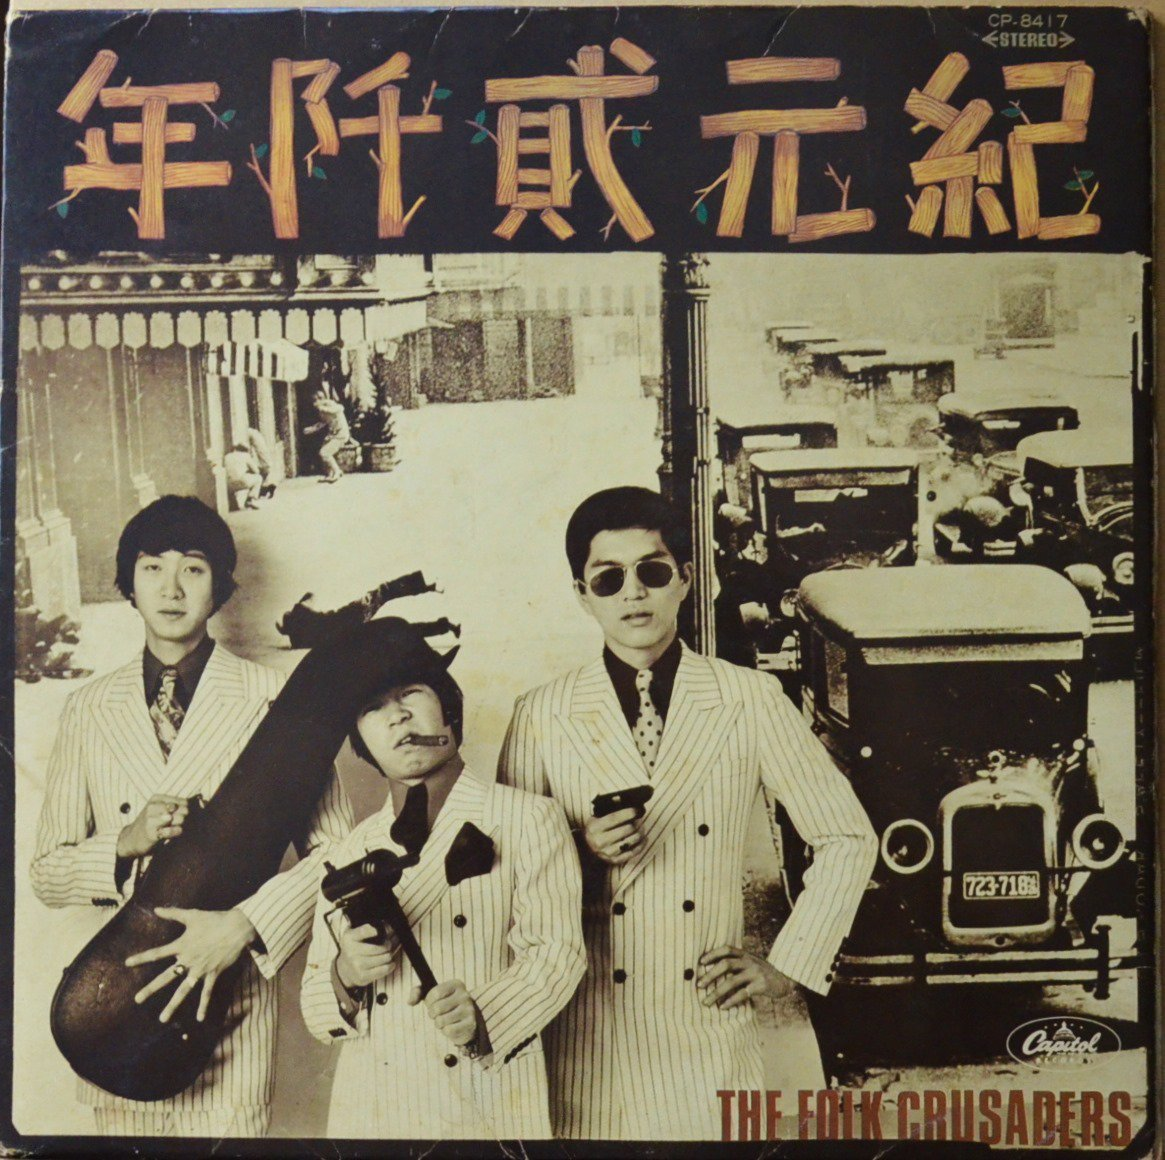 ザ・フォーク・クルセダーズ THE FOLK CRUSADERS / 紀元貮阡年 (WITH THE FOLK CRUSADERS) (LP)